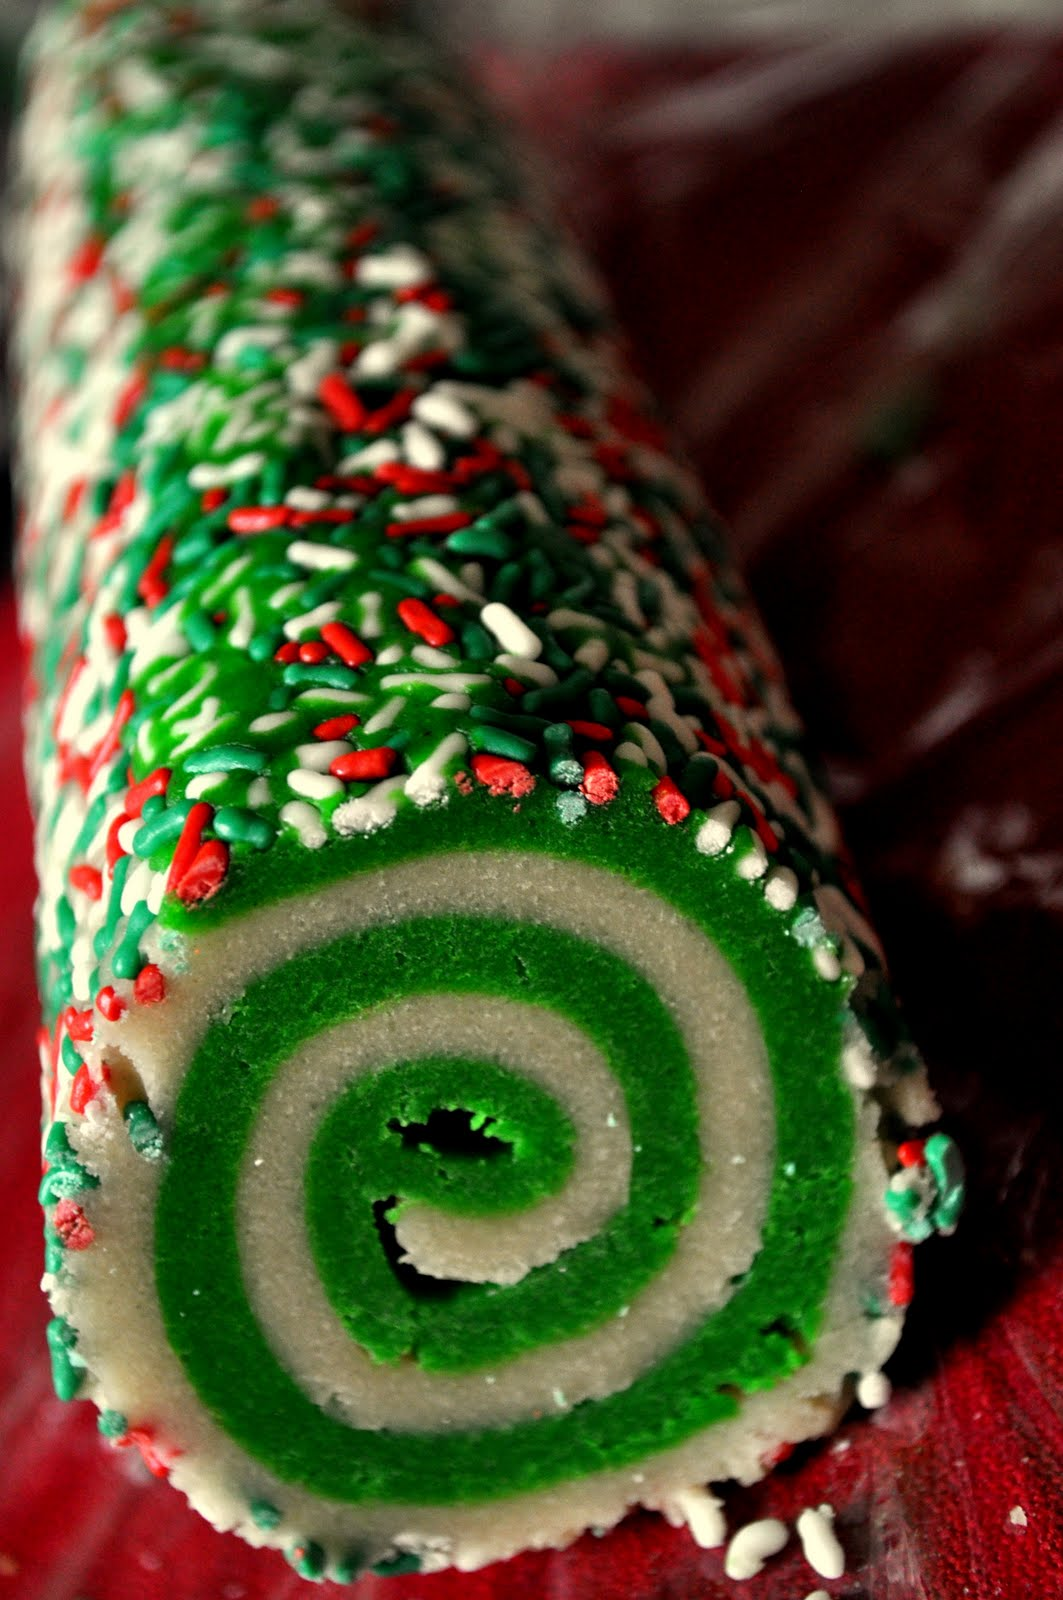 Our Italian Kitchen Colorful Swirl Cookies